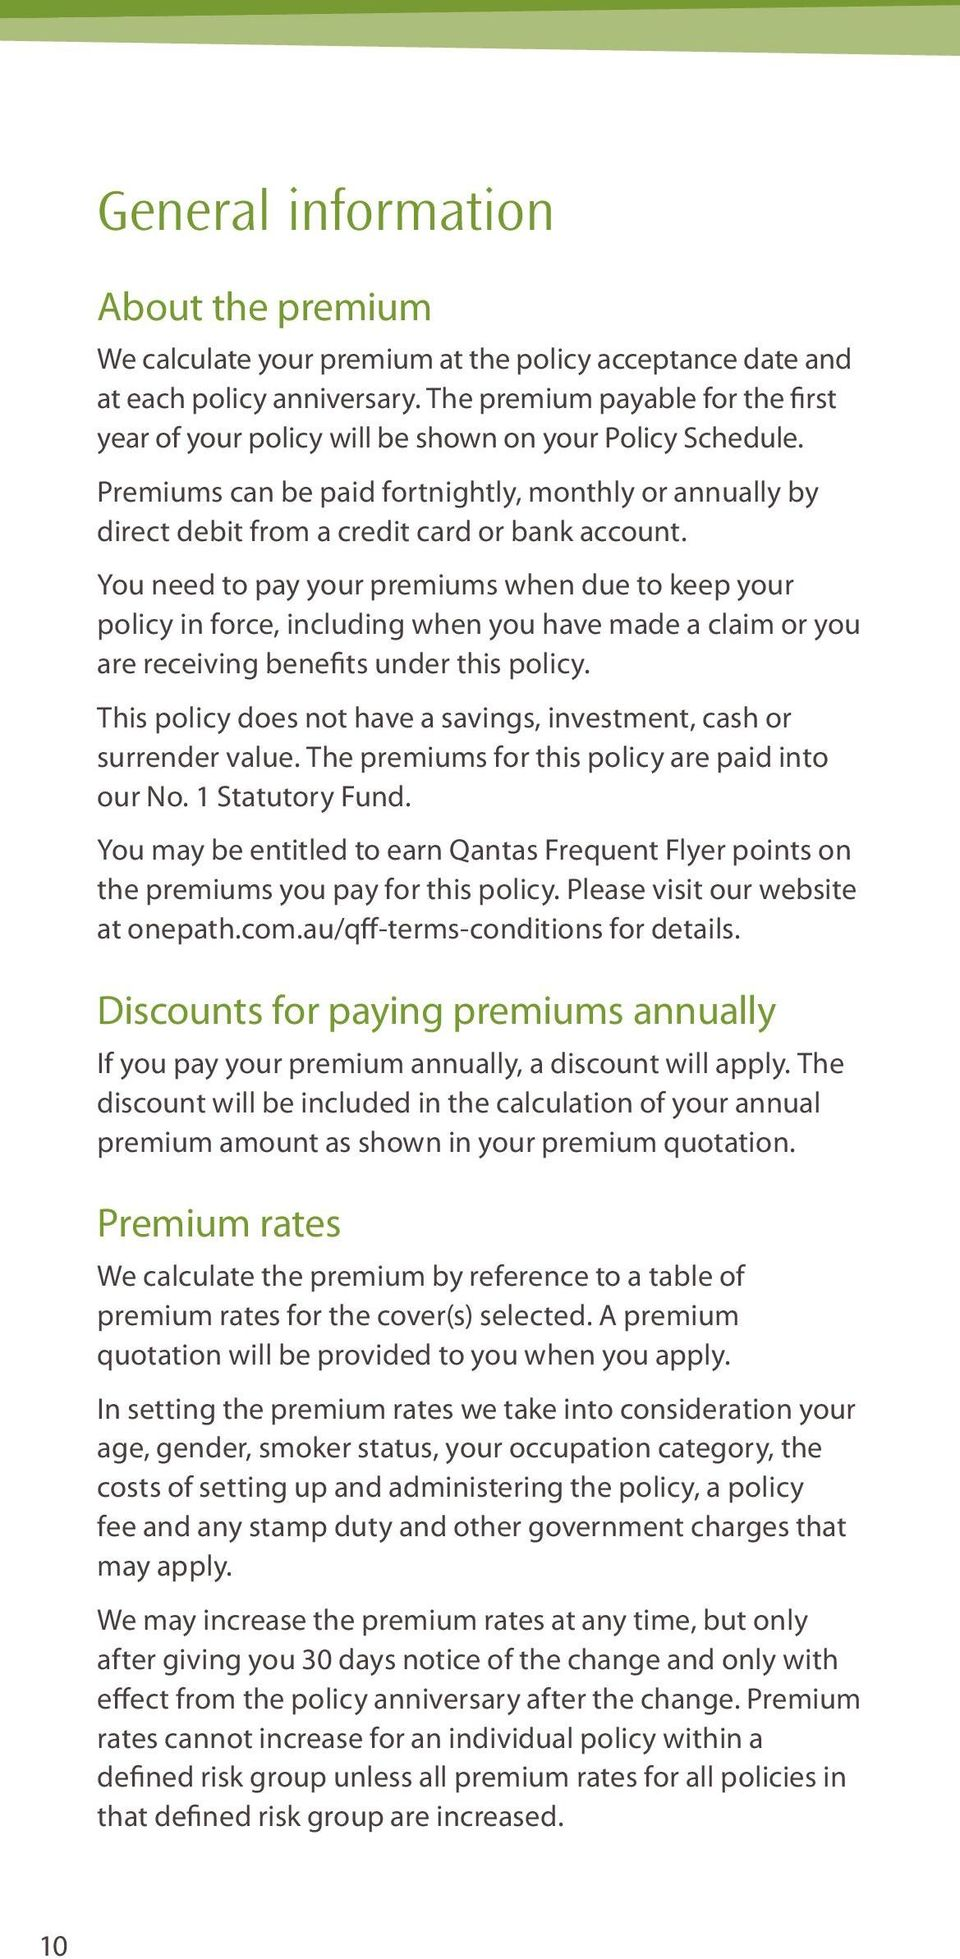 You need to pay your premiums when due to keep your policy in force, including when you have made a claim or you are receiving benefits under this policy.